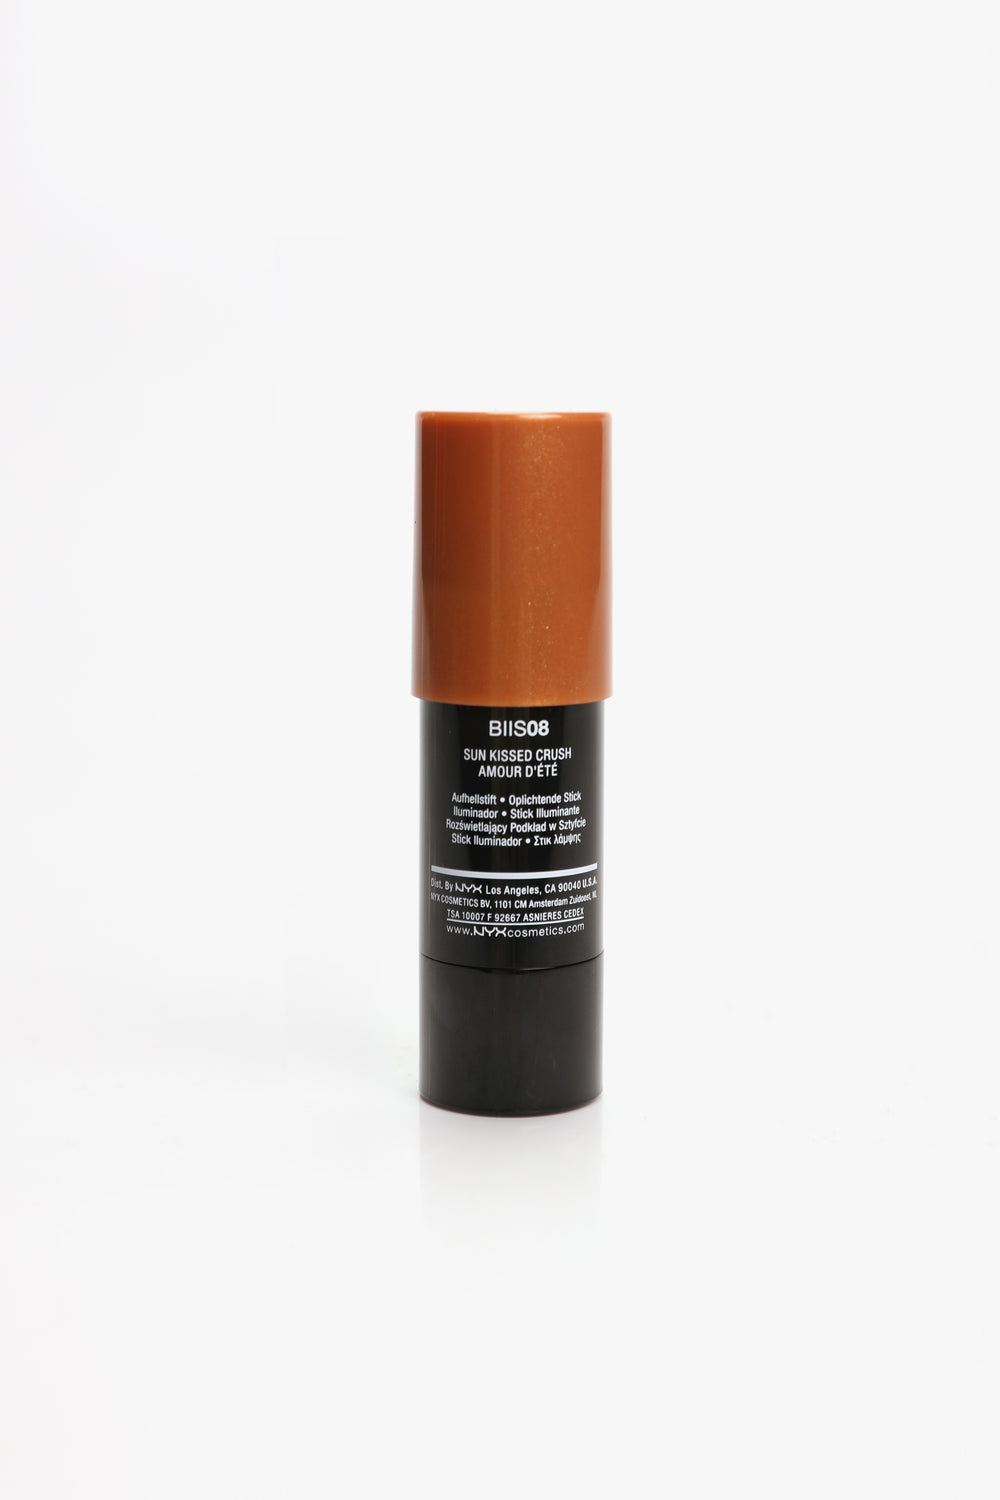 NYX Bright Idea Illuminating Stick - Sunkissed Crush